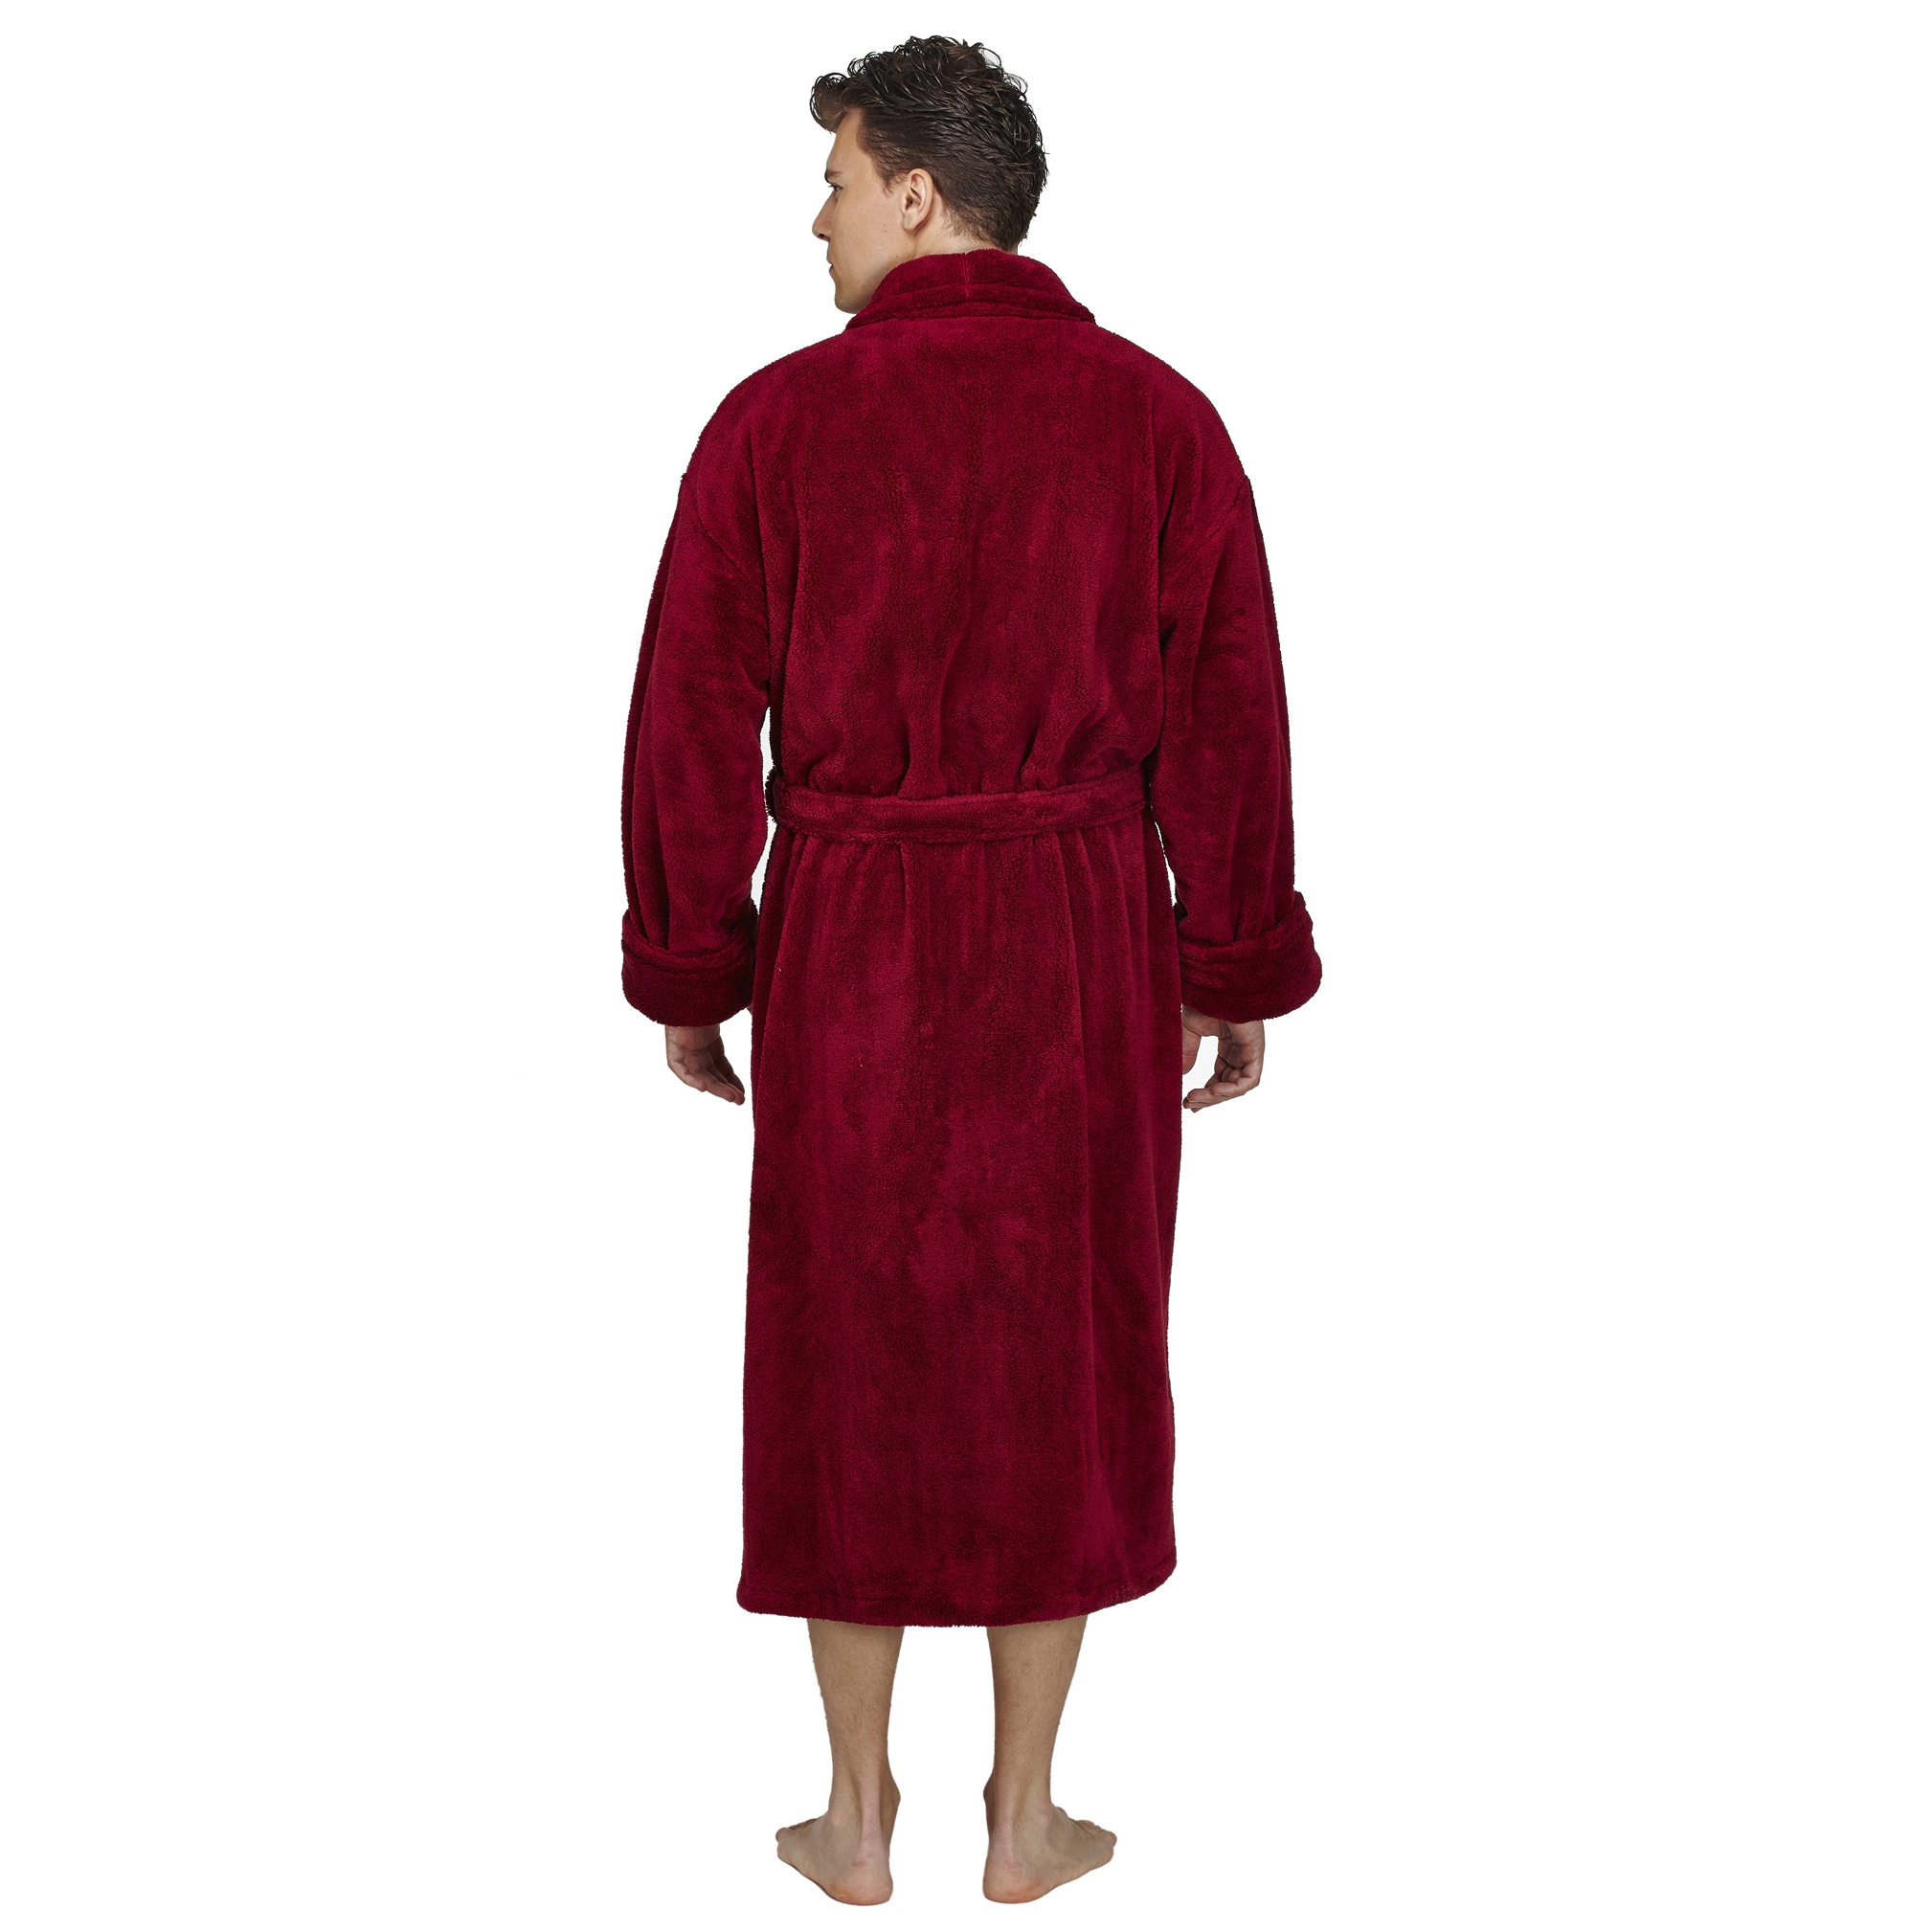 Shop Men s Shawl Fleece Bathrobe Turkish Soft Plush Robe - Free ... 088e03d18